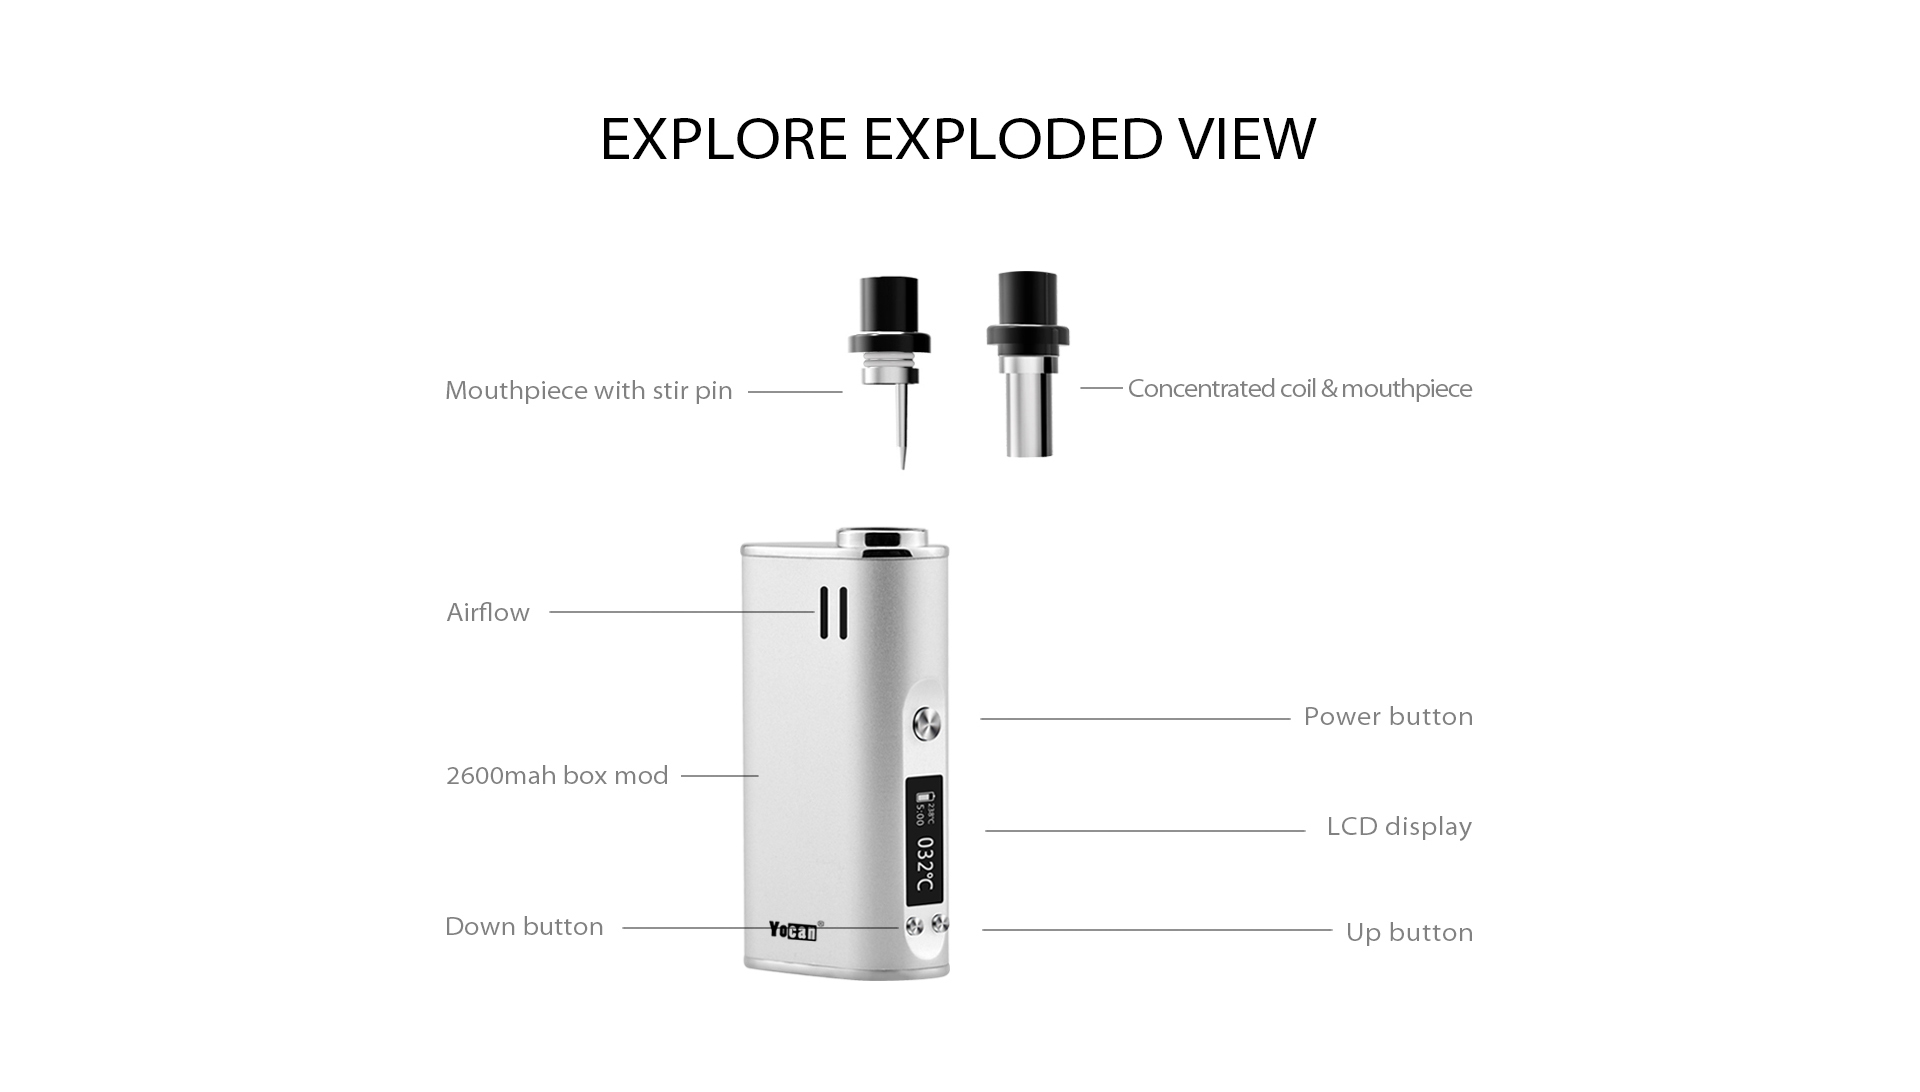 The exploded view of Yocan Explore